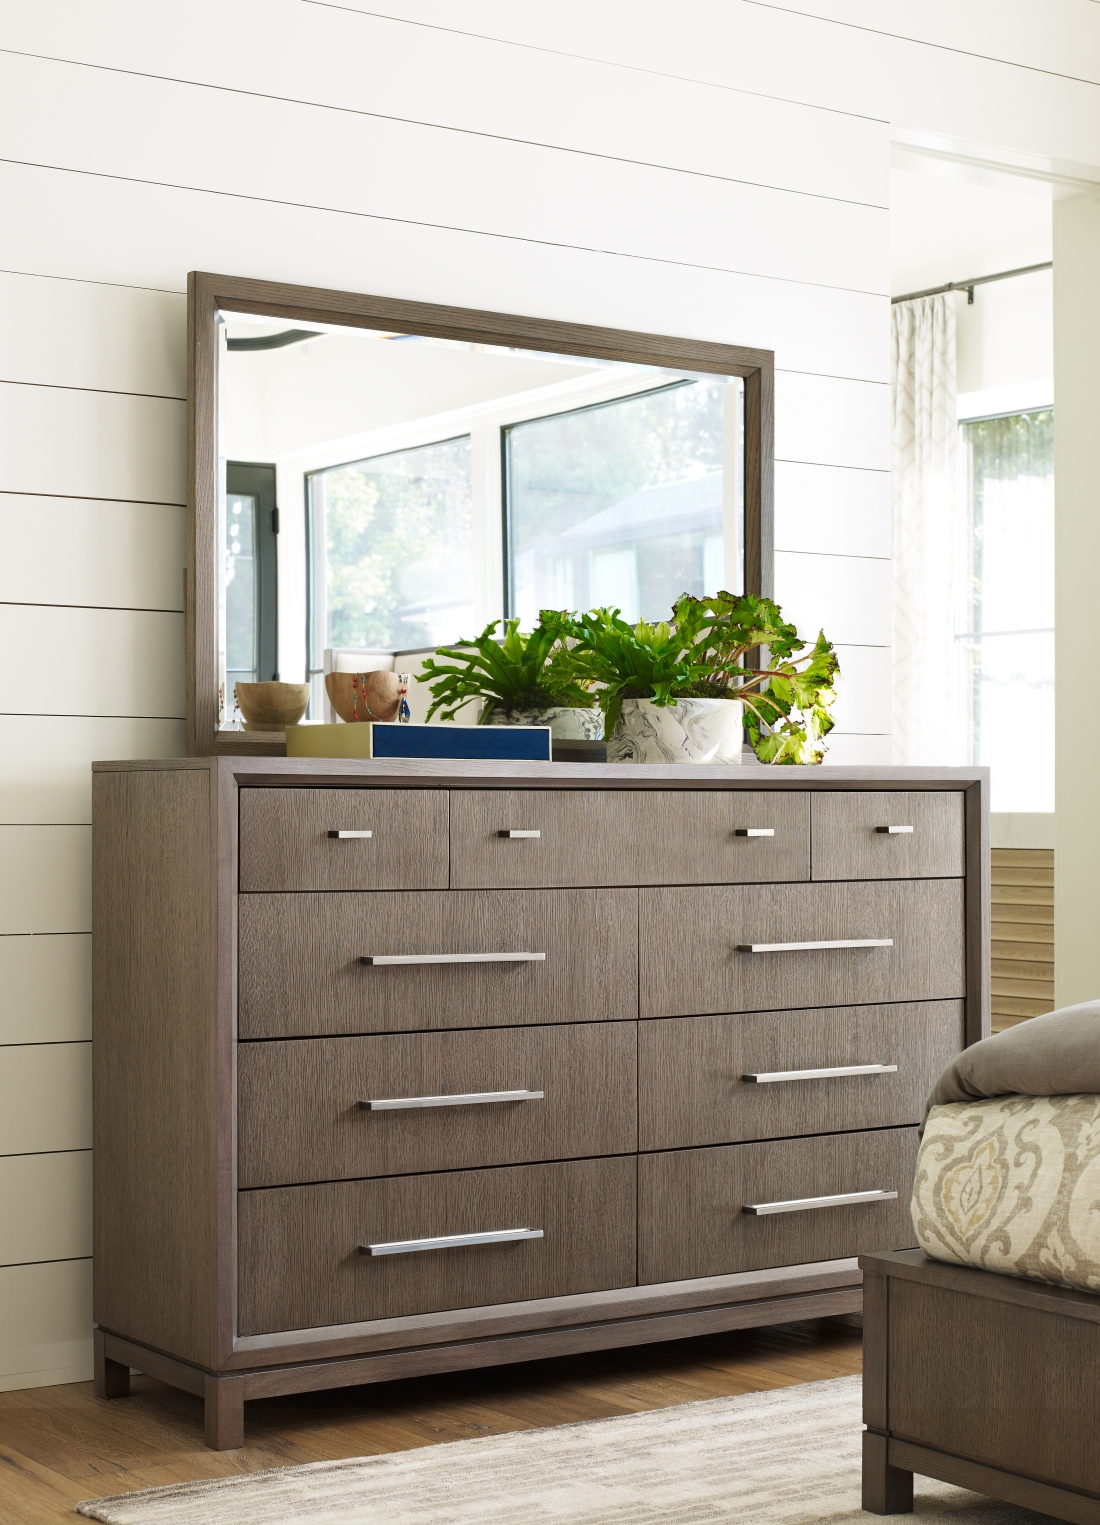 DRESSER-HIGH-LINE-EL-DORADO-FURNITURE-LEGA-68